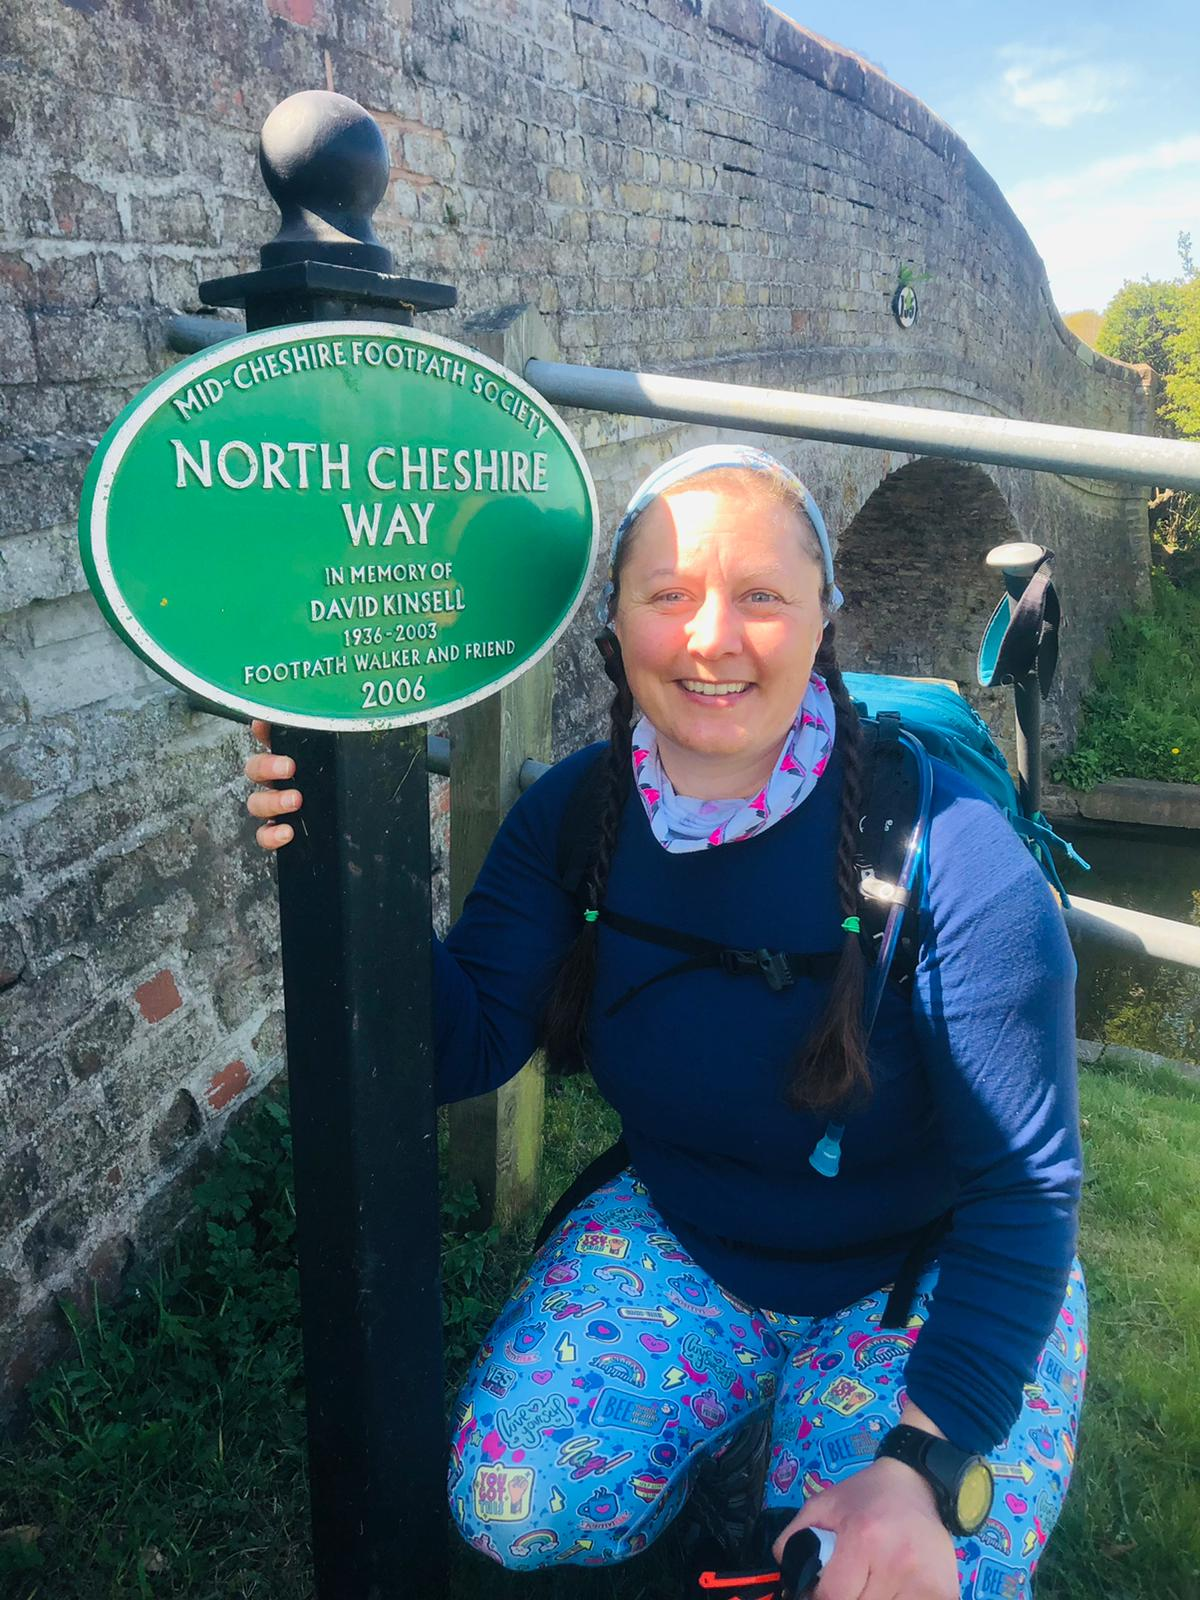 A green cast metal sign for the North Cheshire Way alongside a canal bridge. A woman in walking kit is sat next to it smiling at the camera